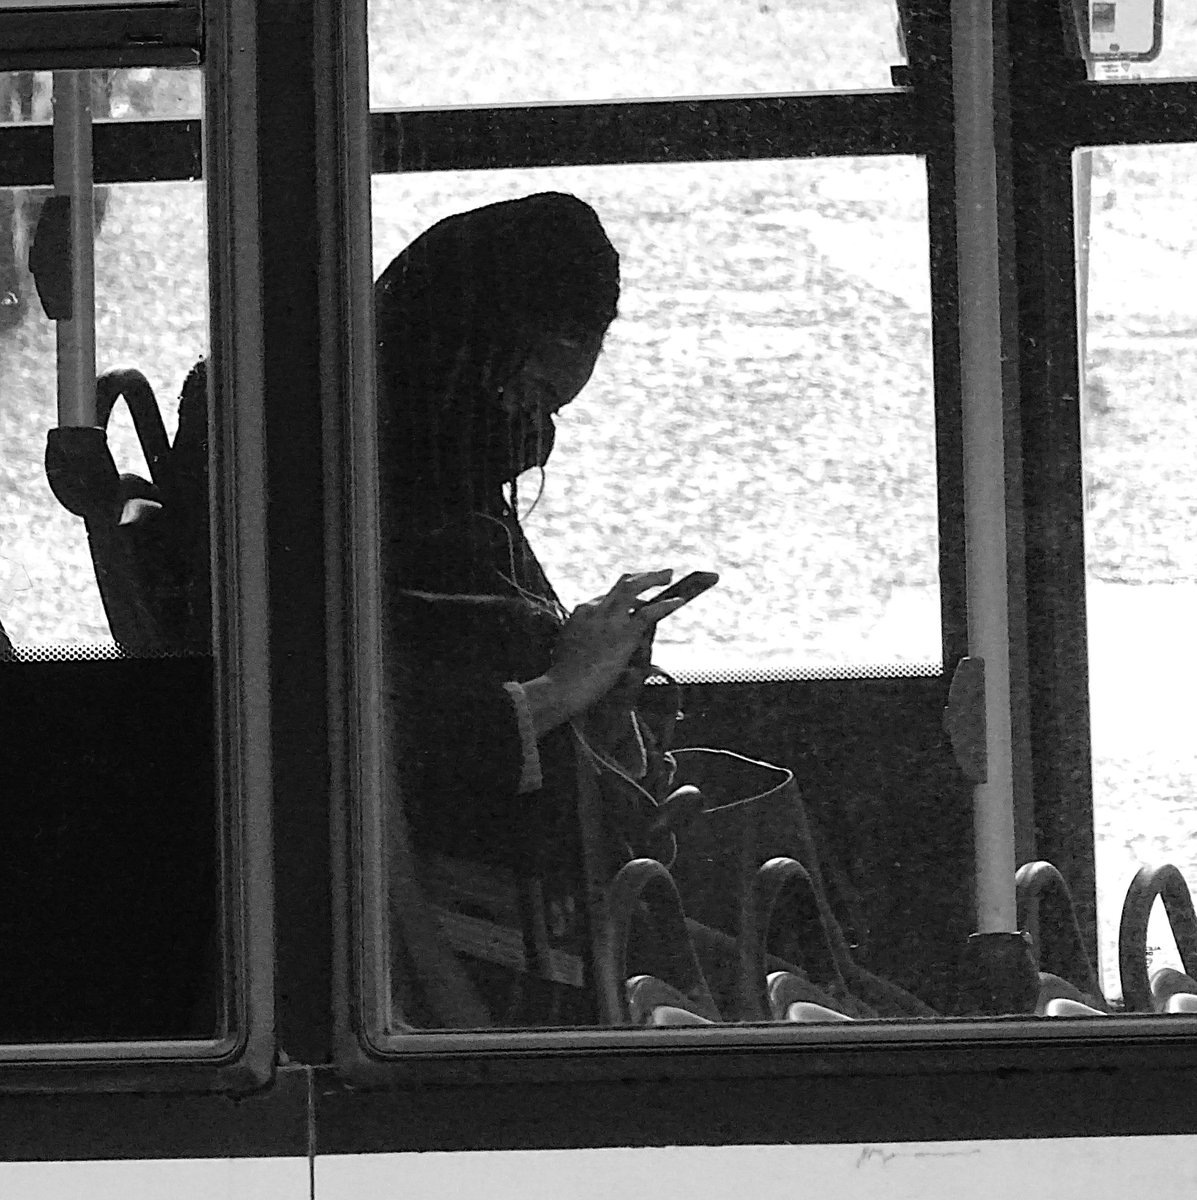 Bus Passenger With Phone #streetphotography #photography #photooftheday #streets #StreetStyle #streetsnap #Monochrome #blackandwhitephotography #ThePhotoHour #PhotographyIsLife #blackandwhite #blackandwhitephoto #SMS認証代行 #sms #textmode #messaging #phones